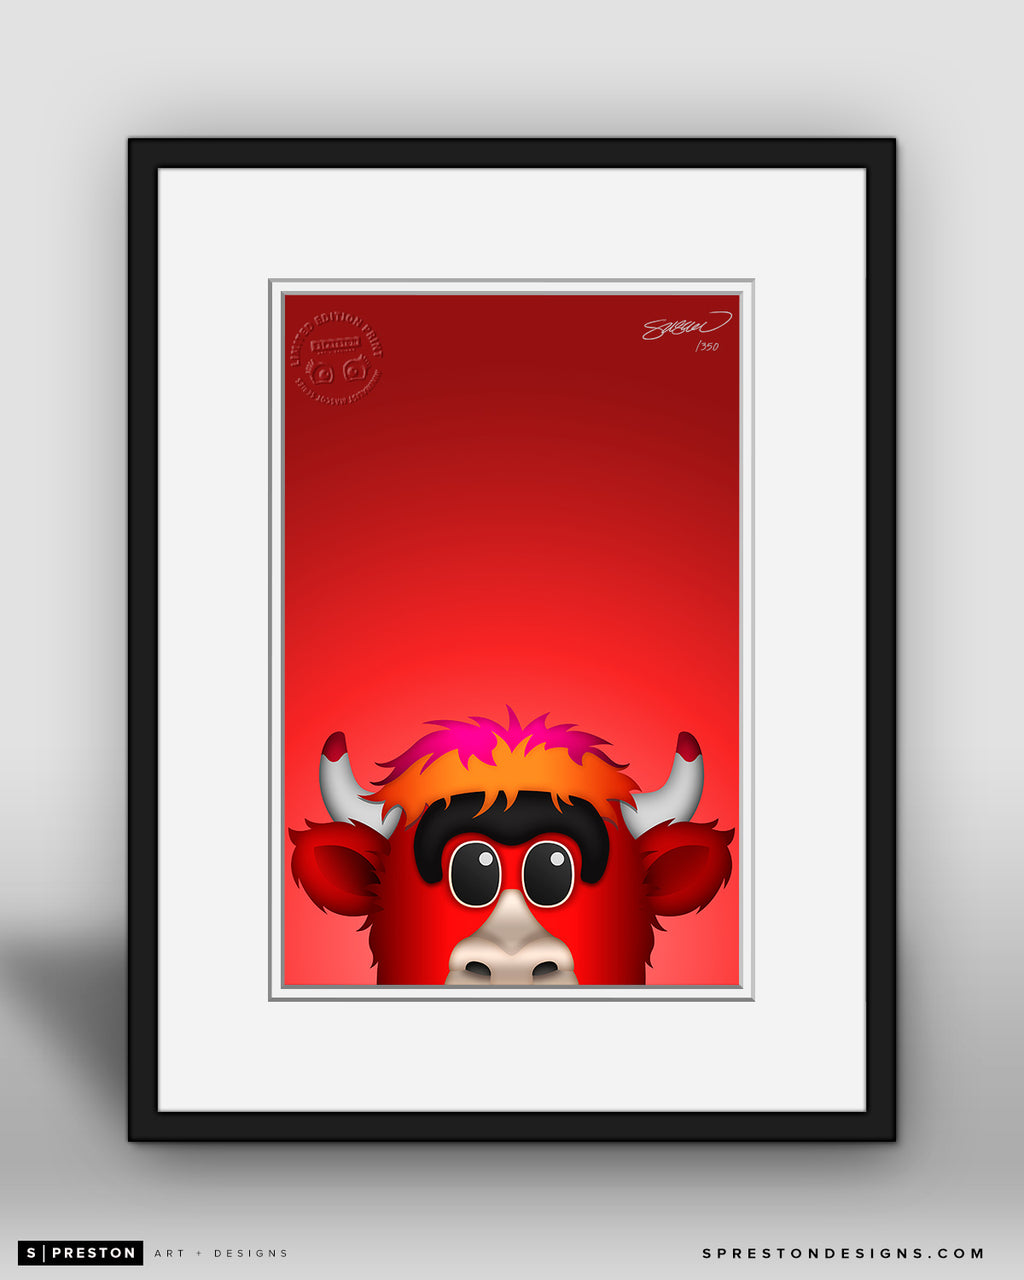 Minimalist Benny The Bull - Chicago Bulls - S. Preston